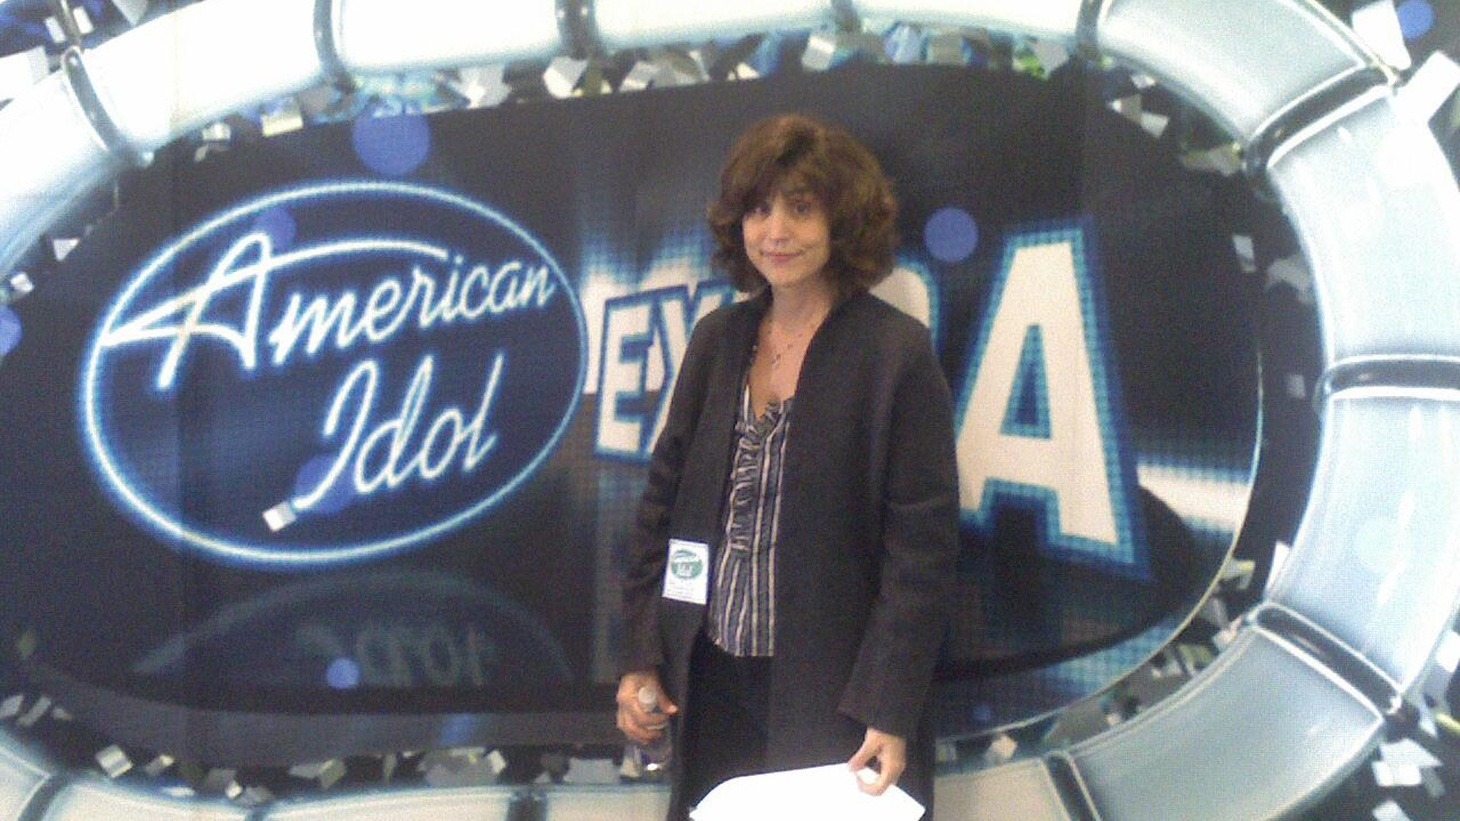 We talk to Fox reality czar Mike Darnell about changes to that American TV behemoth, American Idol.